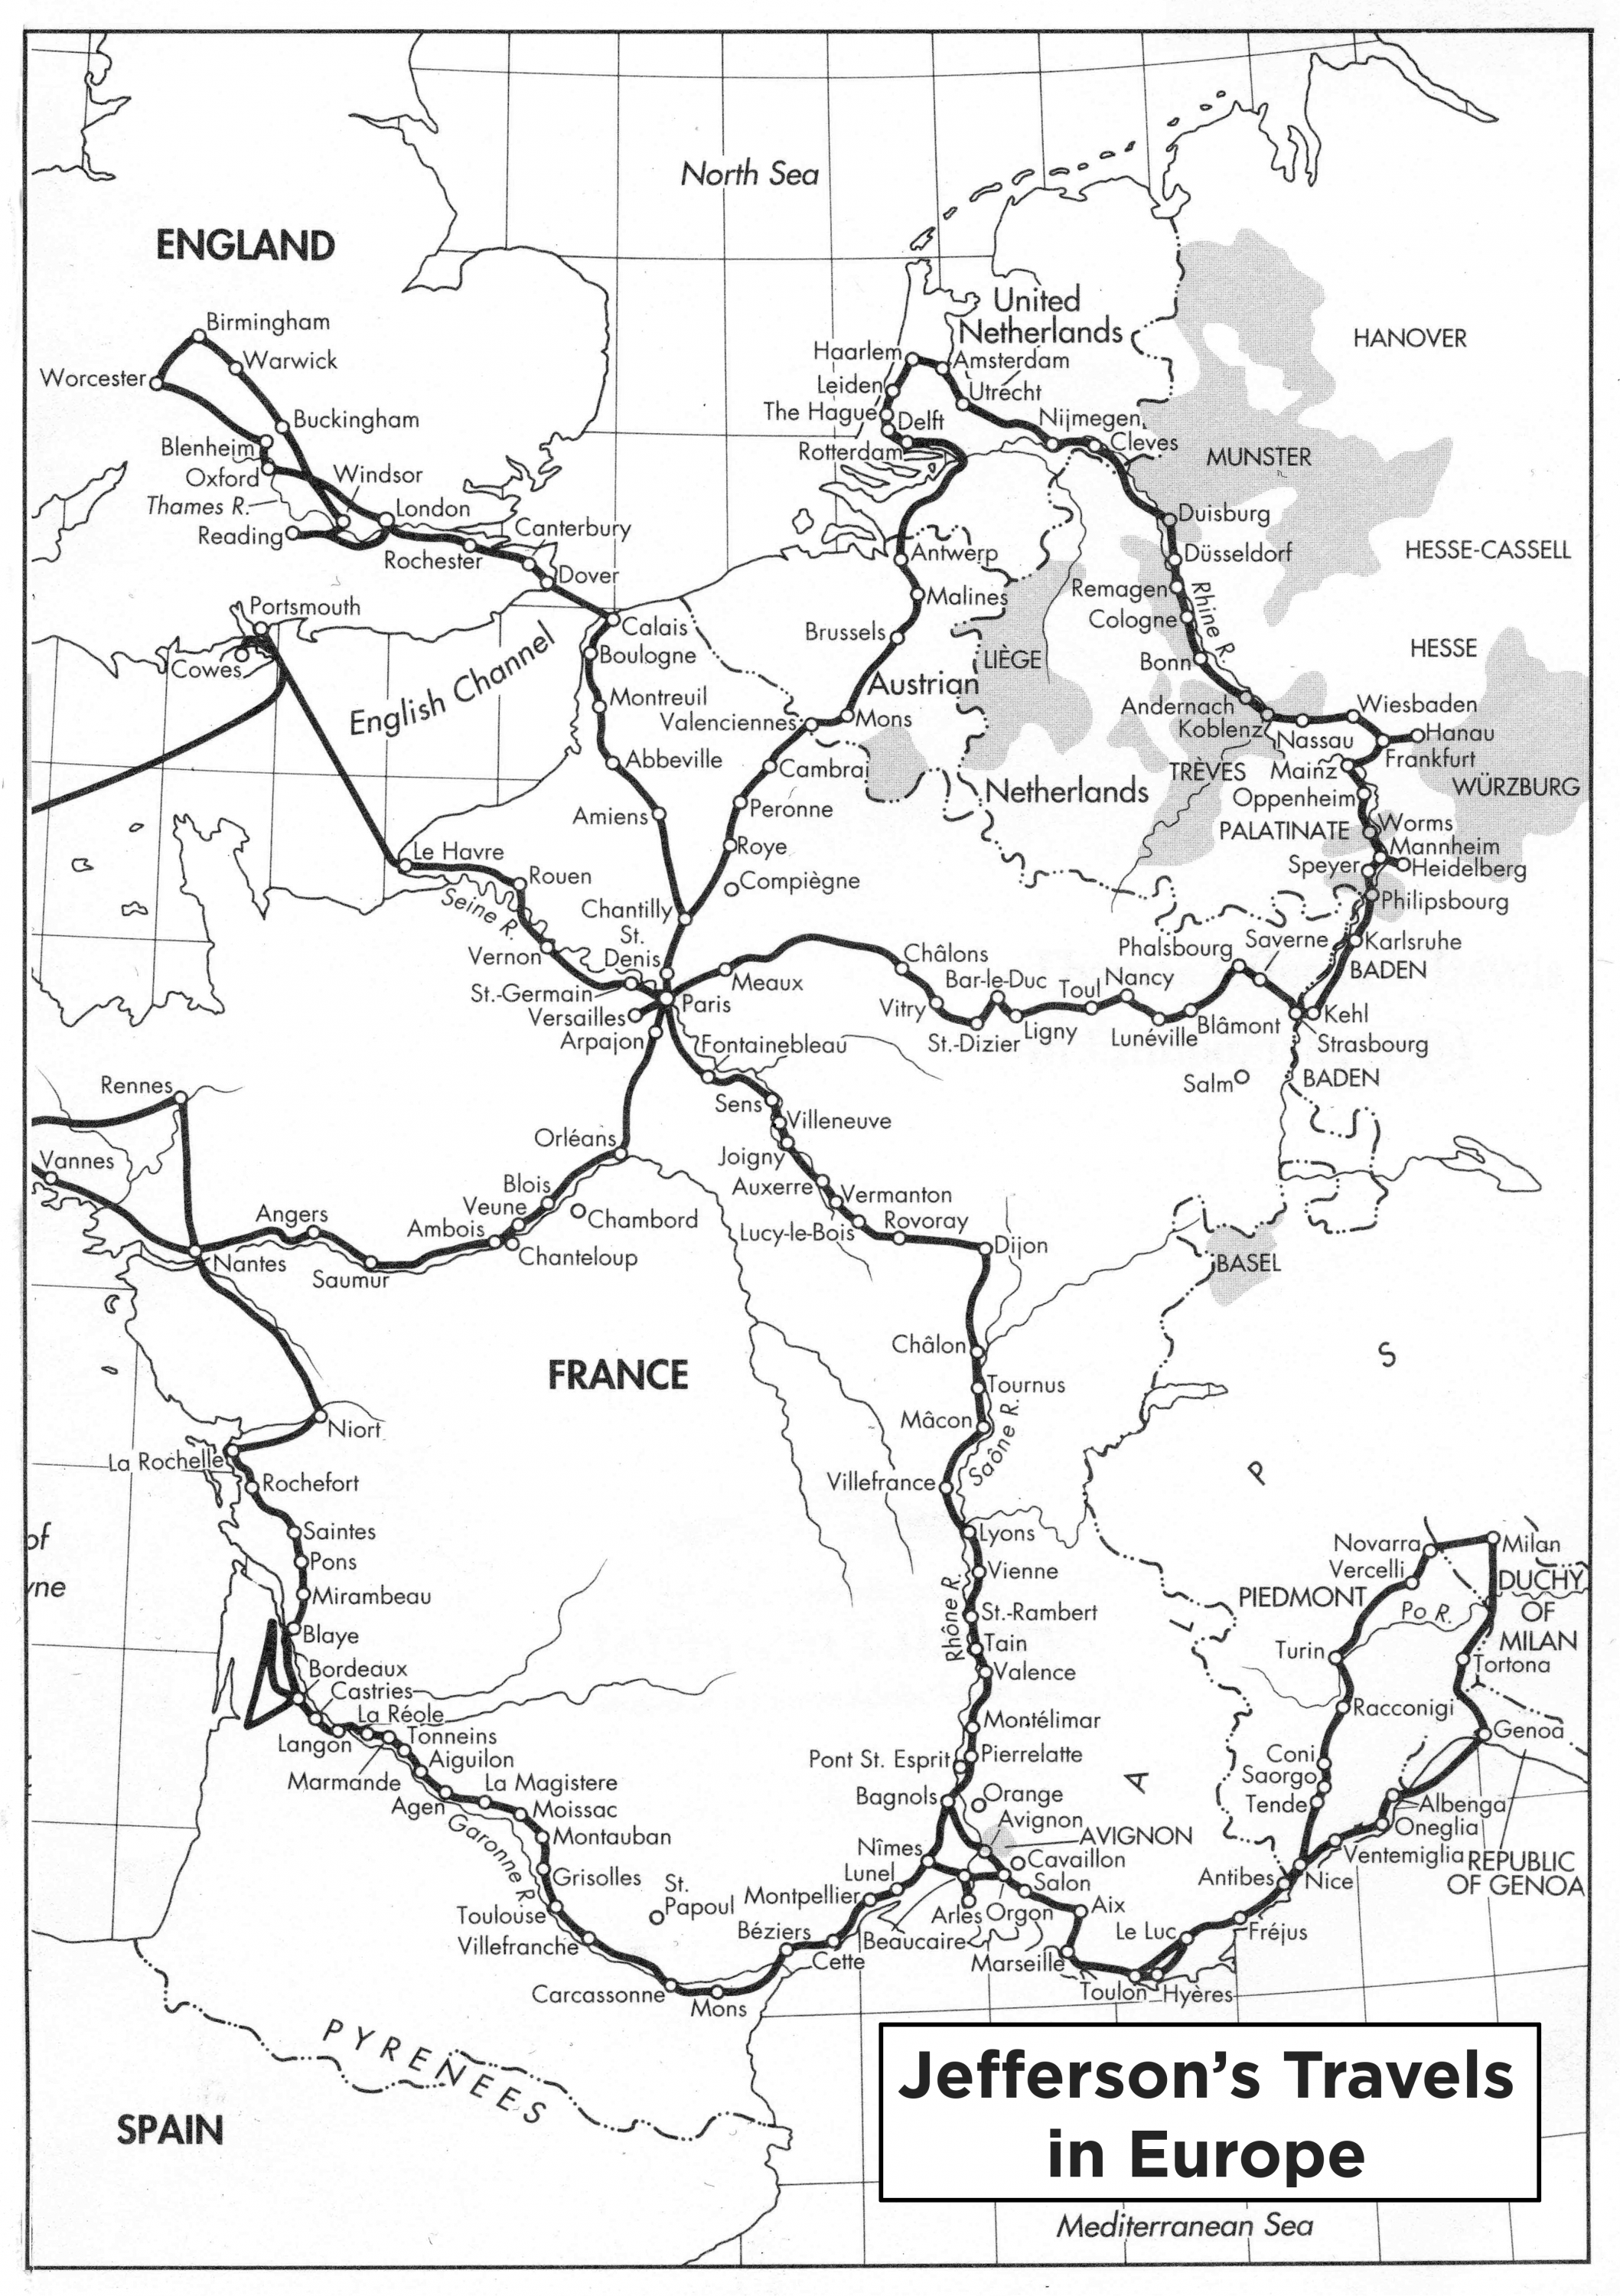 Map of Jefferson's travels in Europe